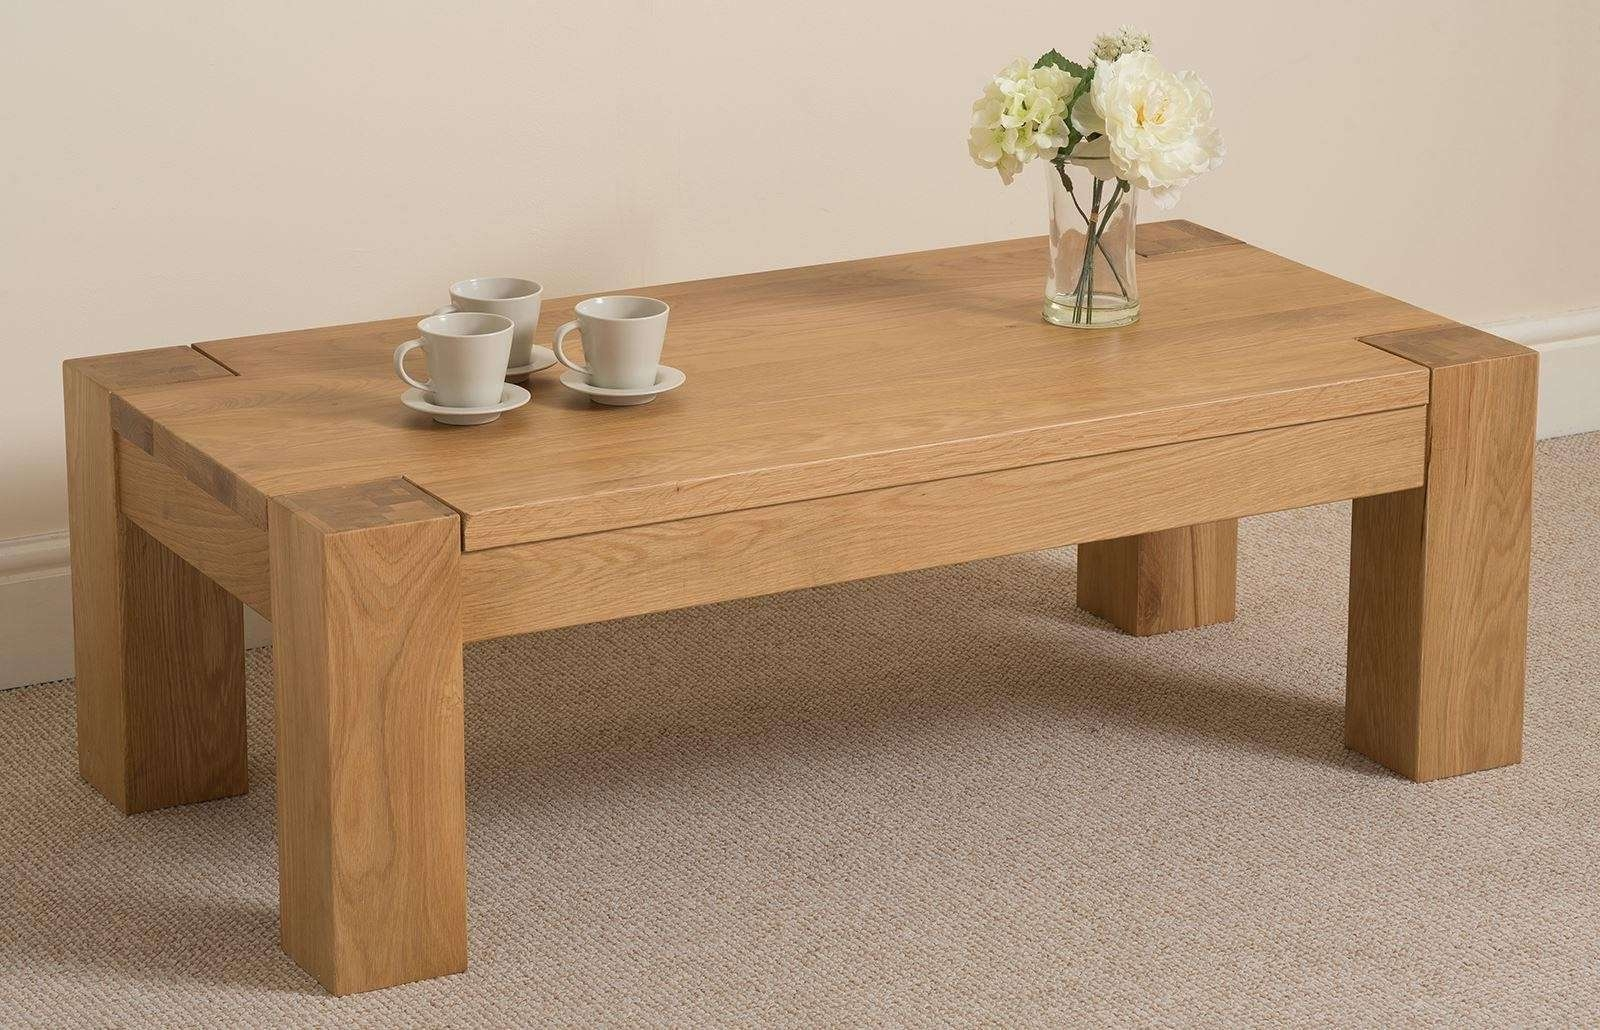 Own An Oak Furniture With Pleasure – Boshdesigns For Well Known Oak Furniture Coffee Tables (View 15 of 20)